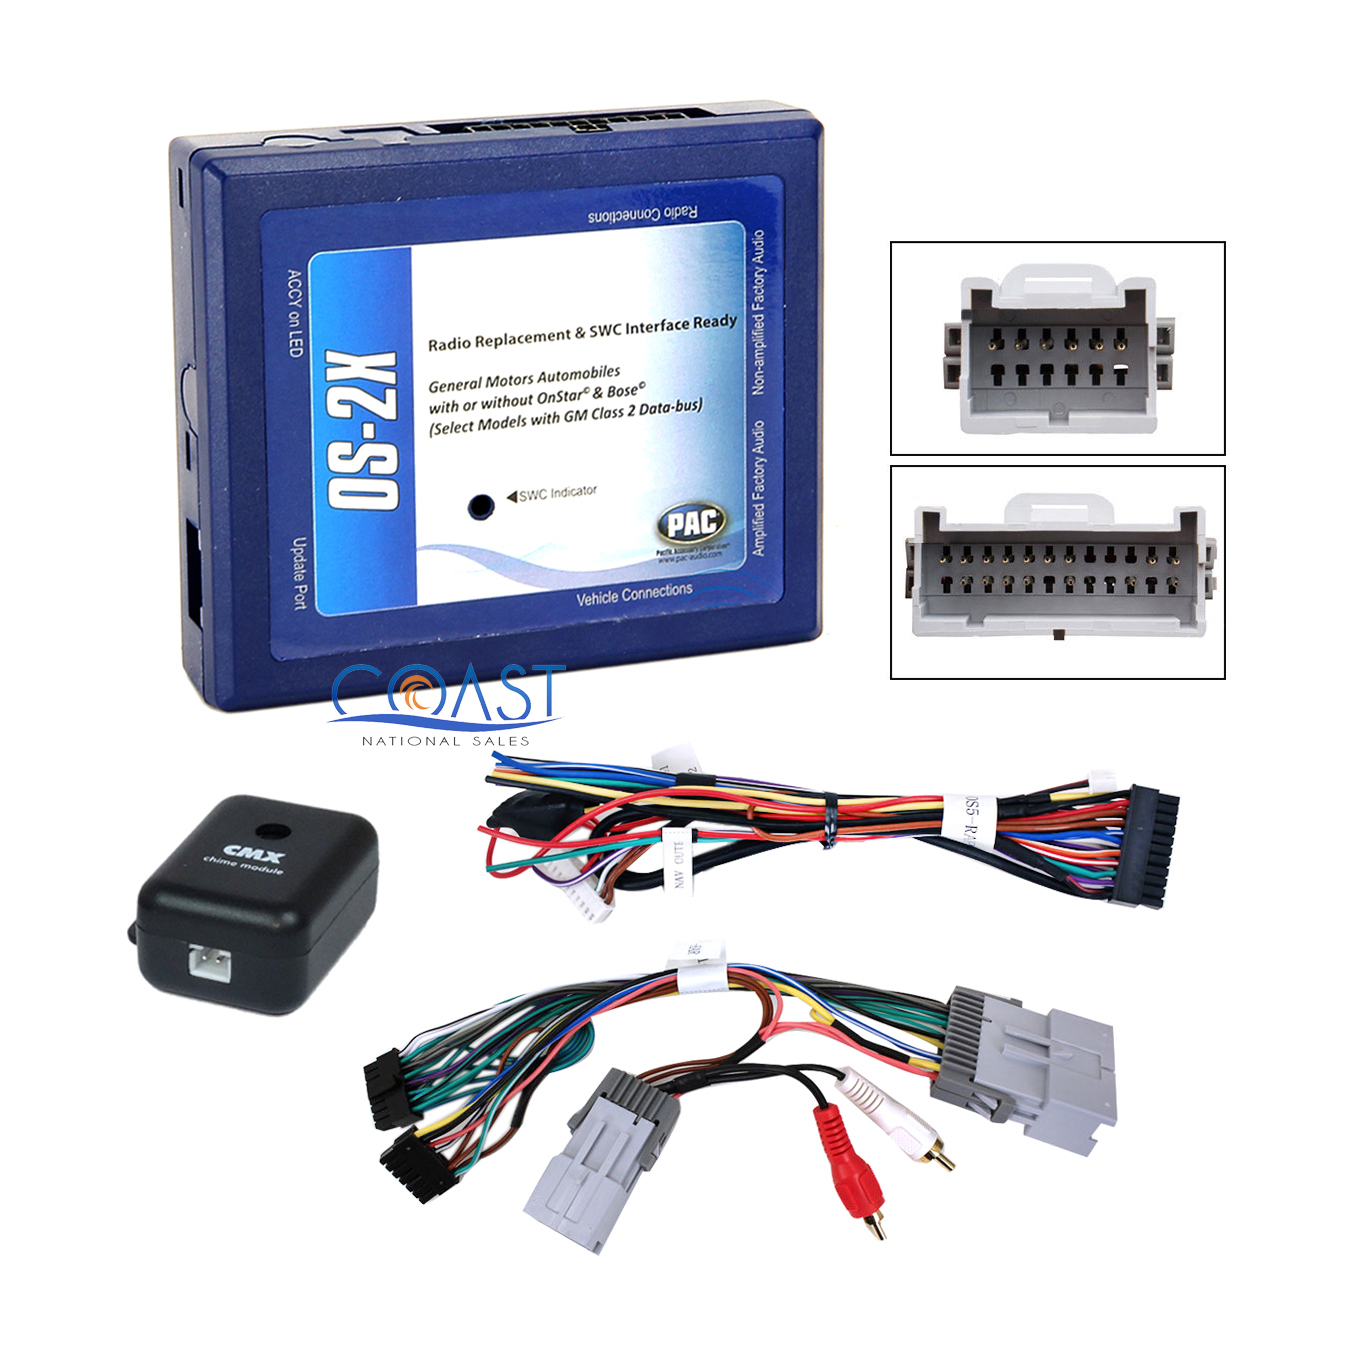 Onstar Wiring Harness Auto Electrical Diagram 2013 Chevy Car Radio Bose Interface For 2000